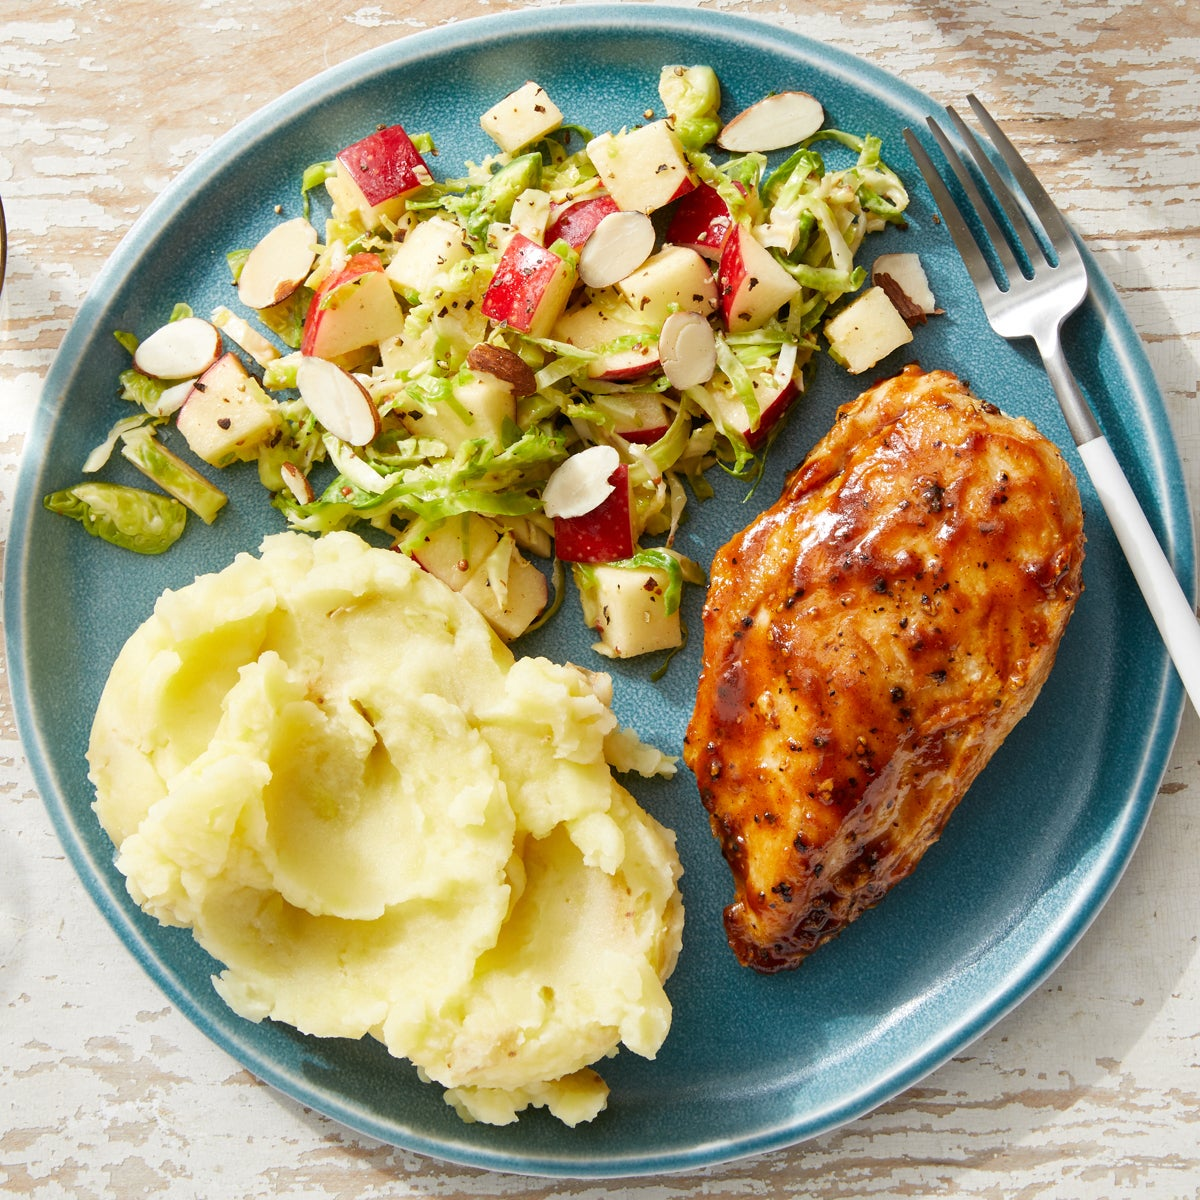 BBQ Chicken & Mashed Potatoes with Brussels Sprout & Apple Slaw